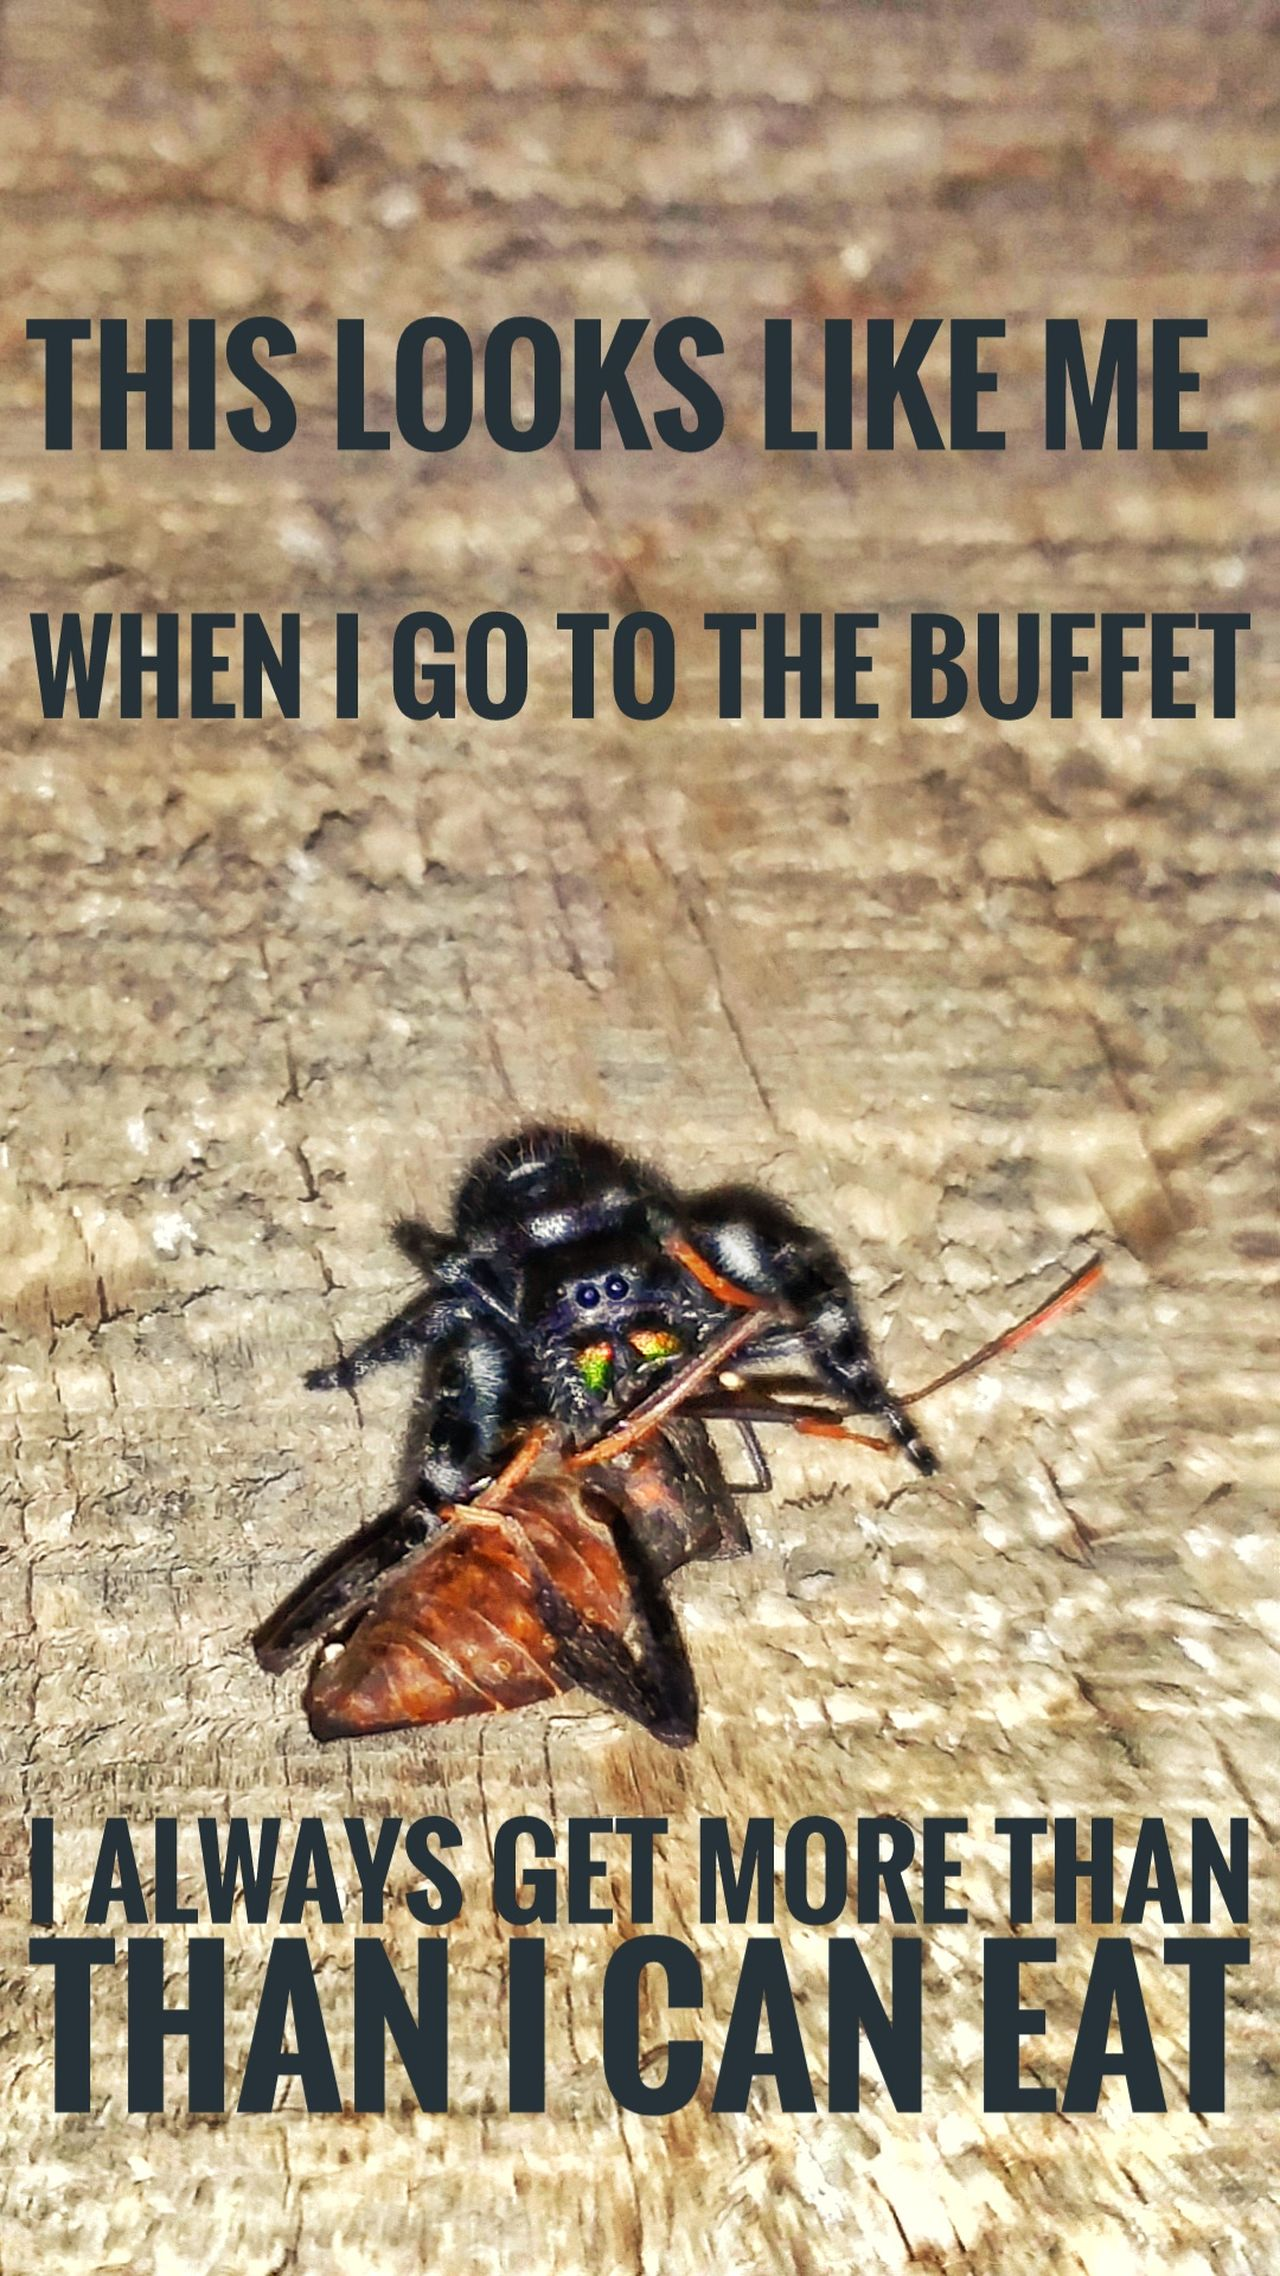 Text Capital Letter Communication No People Wood - Material Day Animal Themes Outdoors Funny Spider Quotes Spider Eating A Fly Spider Hunting Spider Eating Hungry Spider Macro Nature Stinkbug Wood Background Insects In Action Insects  Close-up Insects  Web Action Shot